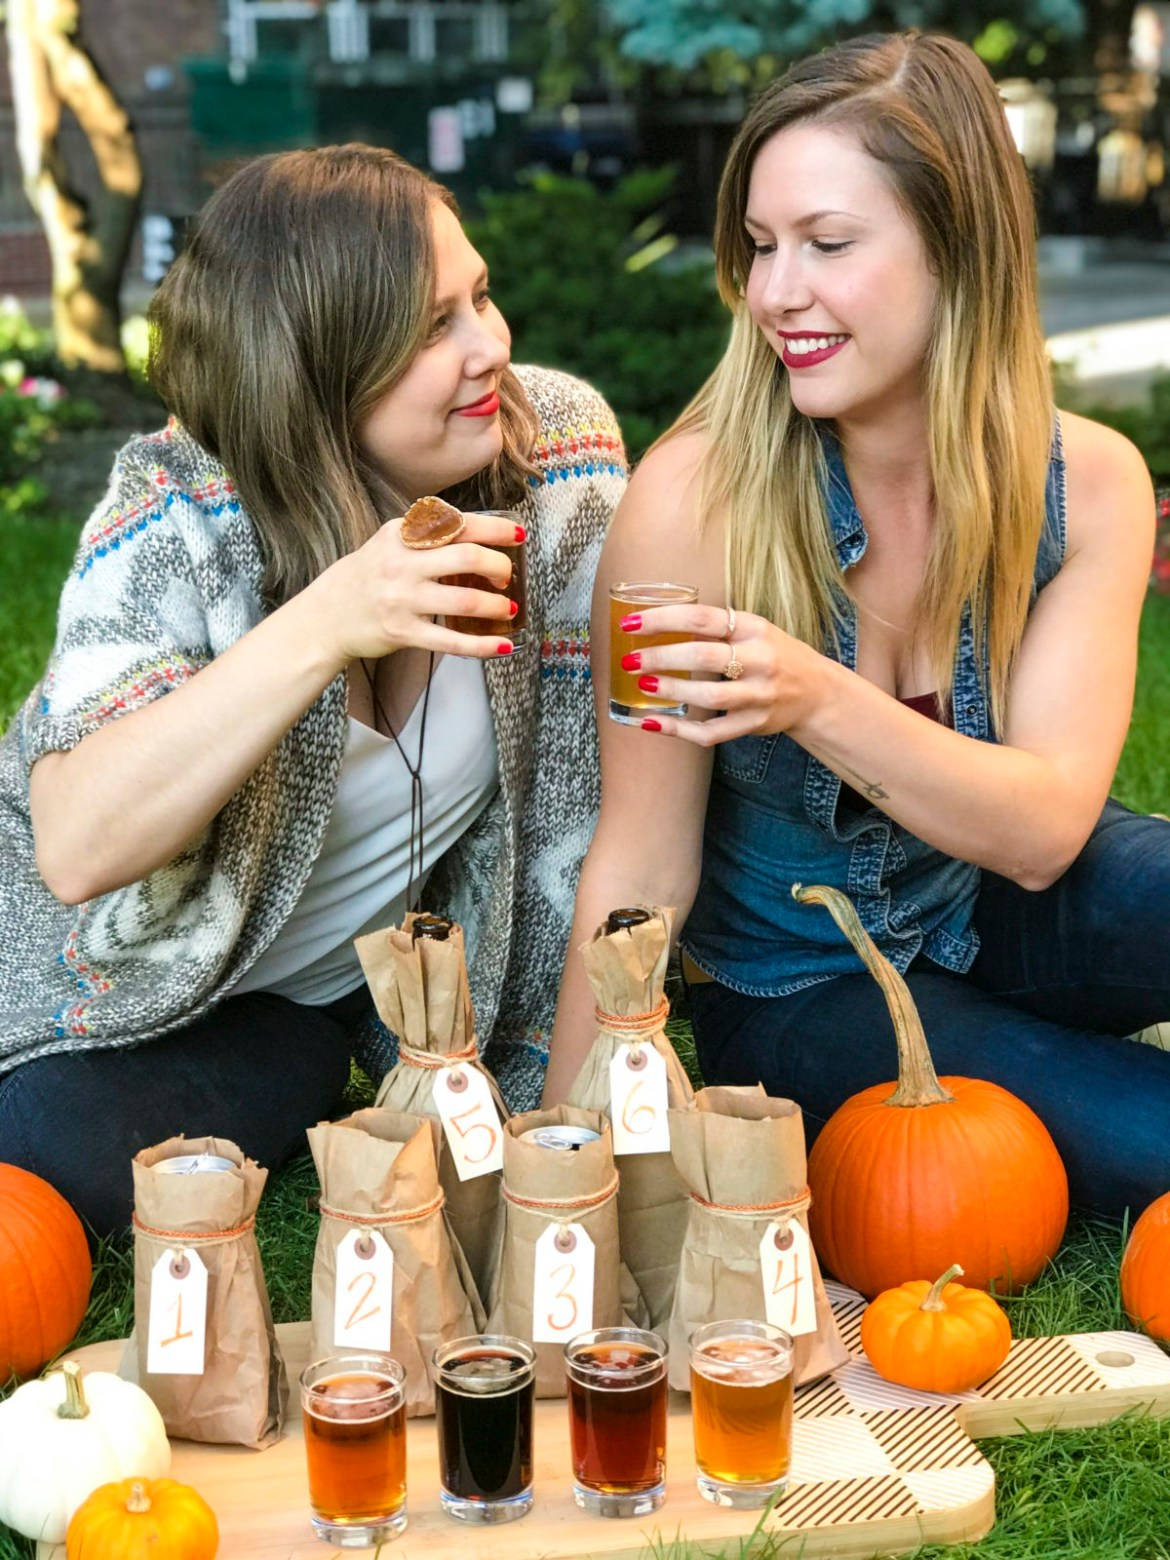 Celebrate Fall with a Pumpkin Beer Tasting